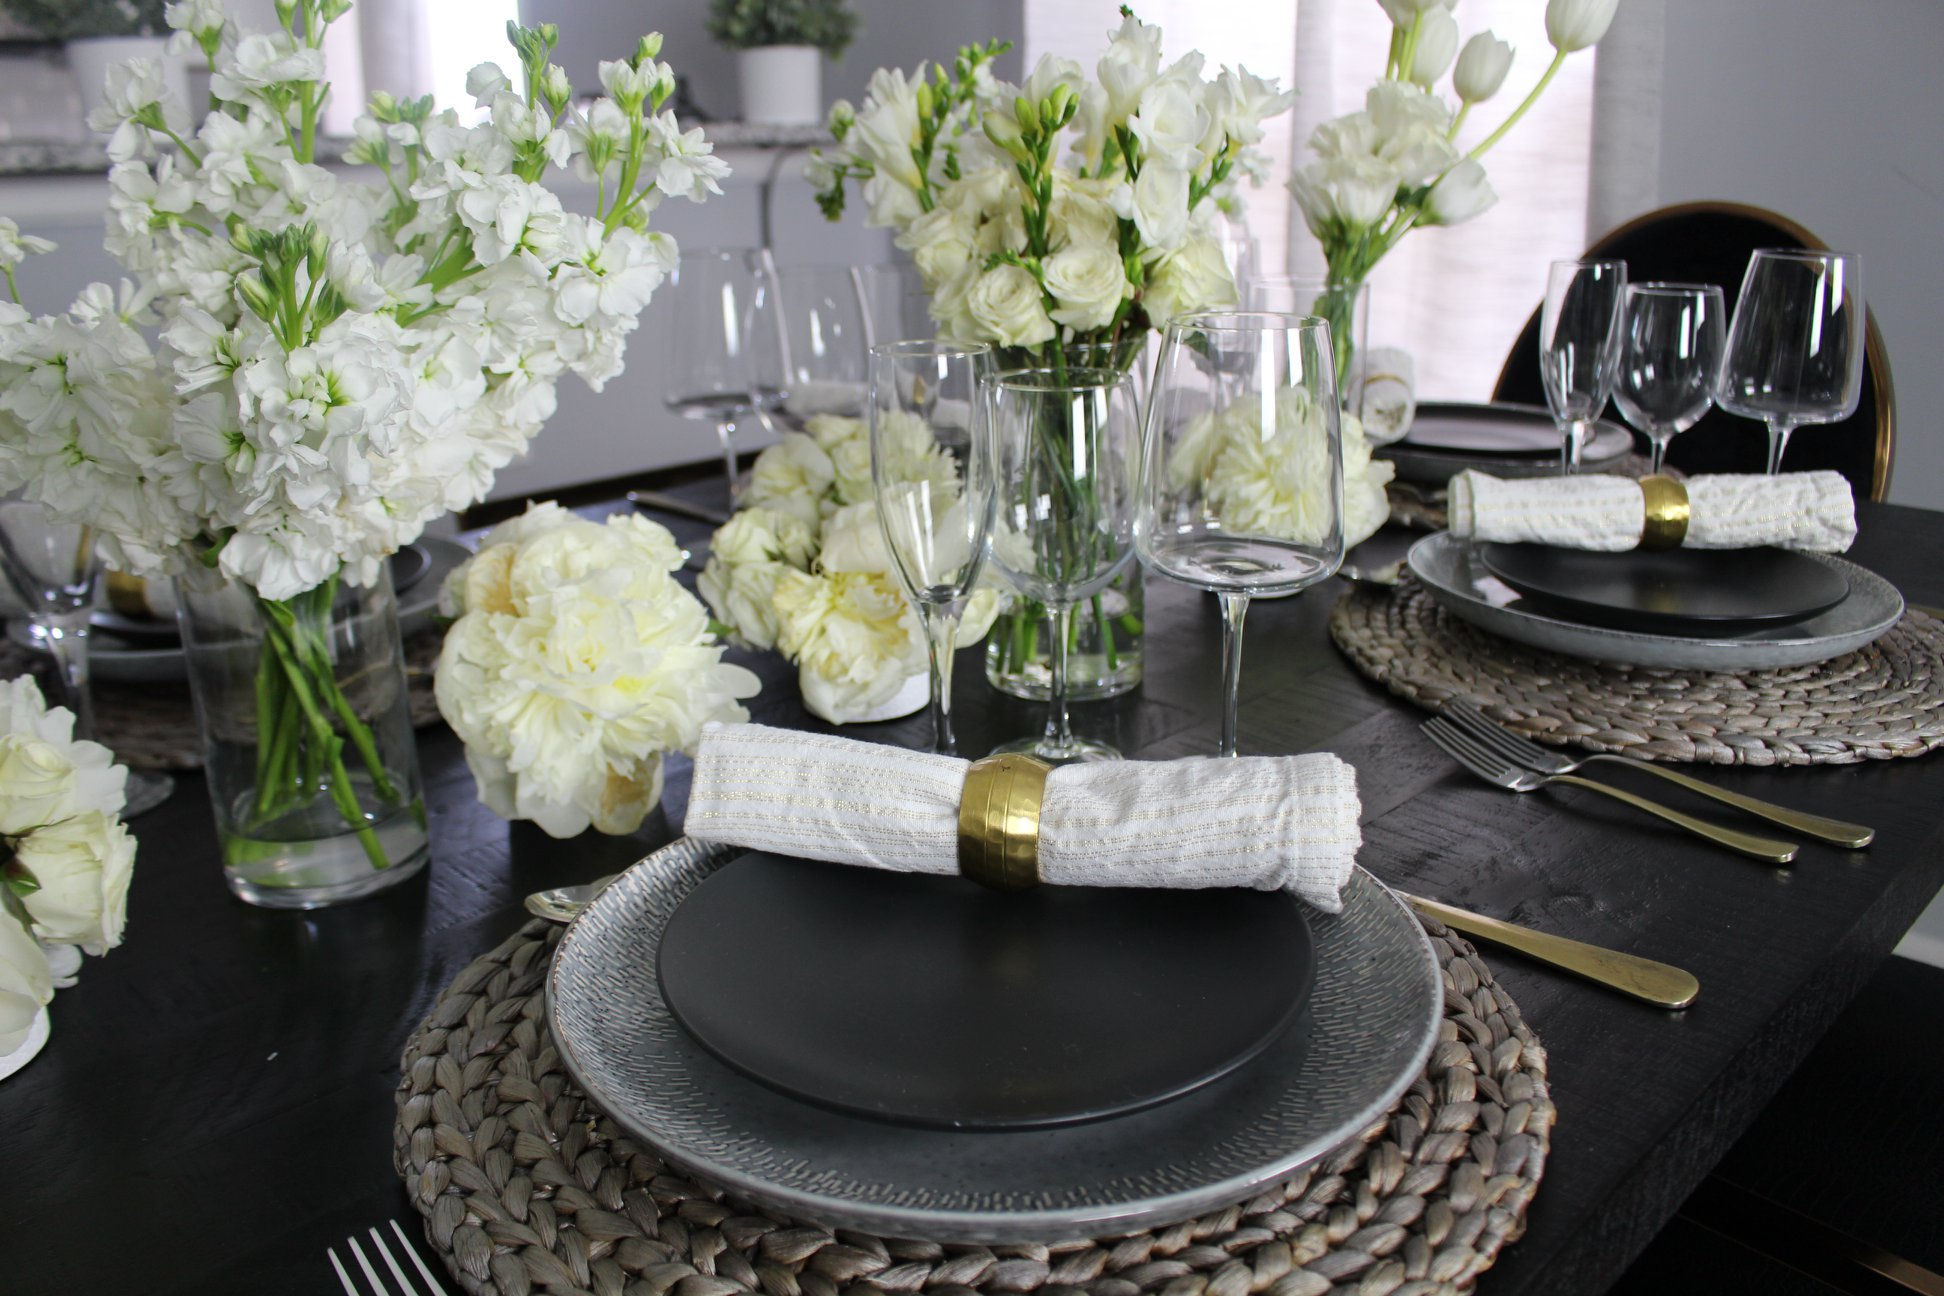 Private In-Home Dinner Party - Andrew Roby Events